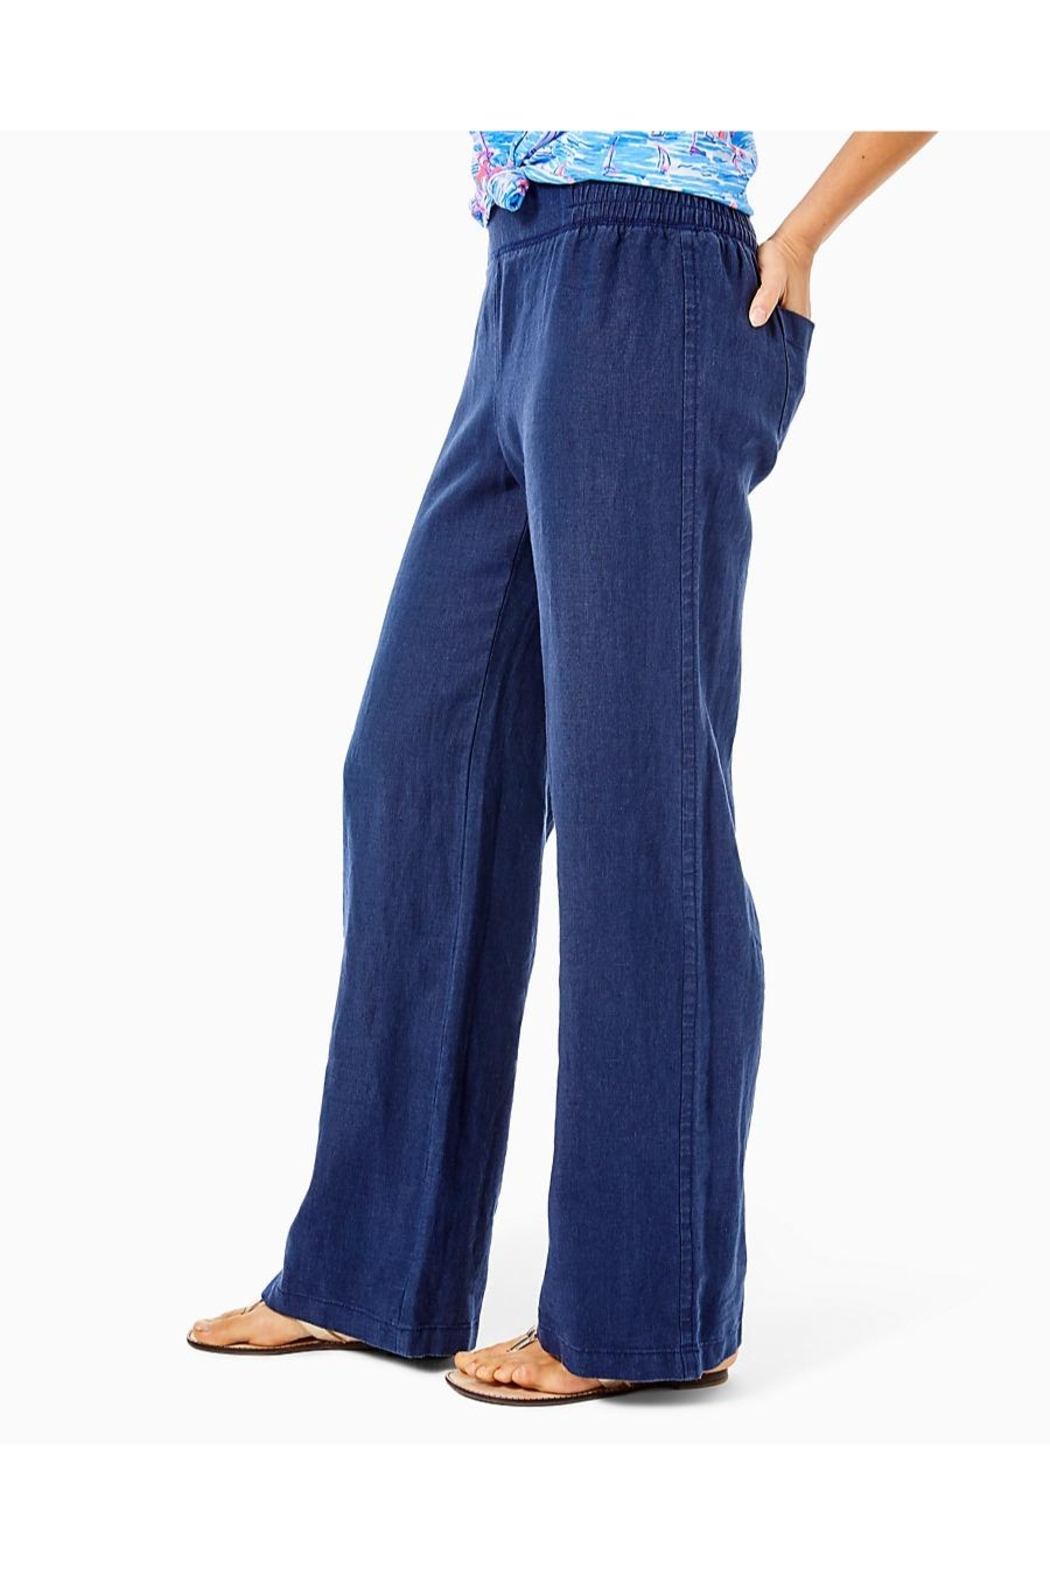 Lilly Pulitzer Beach Palazzo Pant - Side Cropped Image